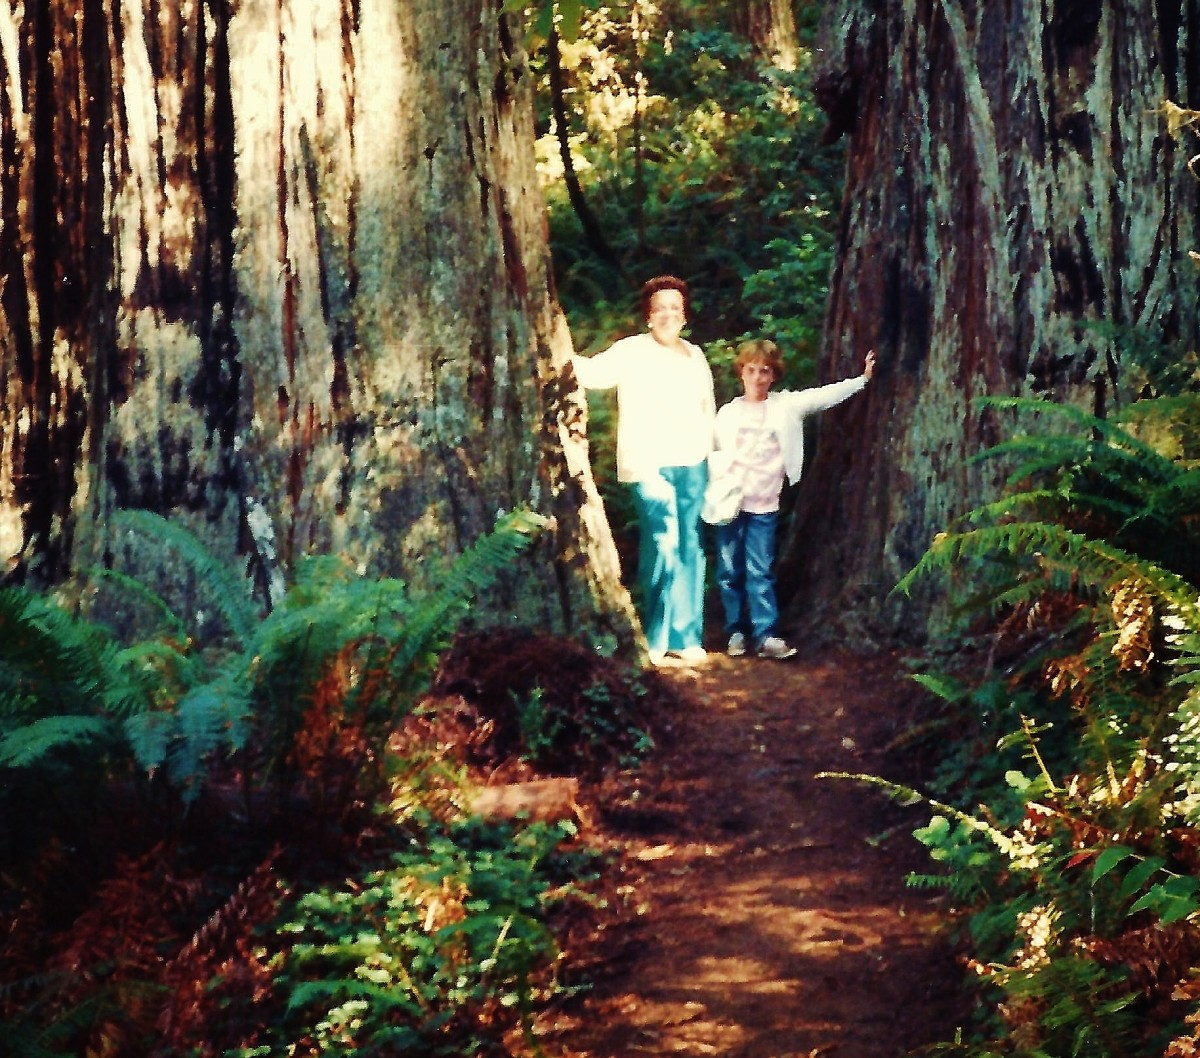 My mother and niece in the Redwoods